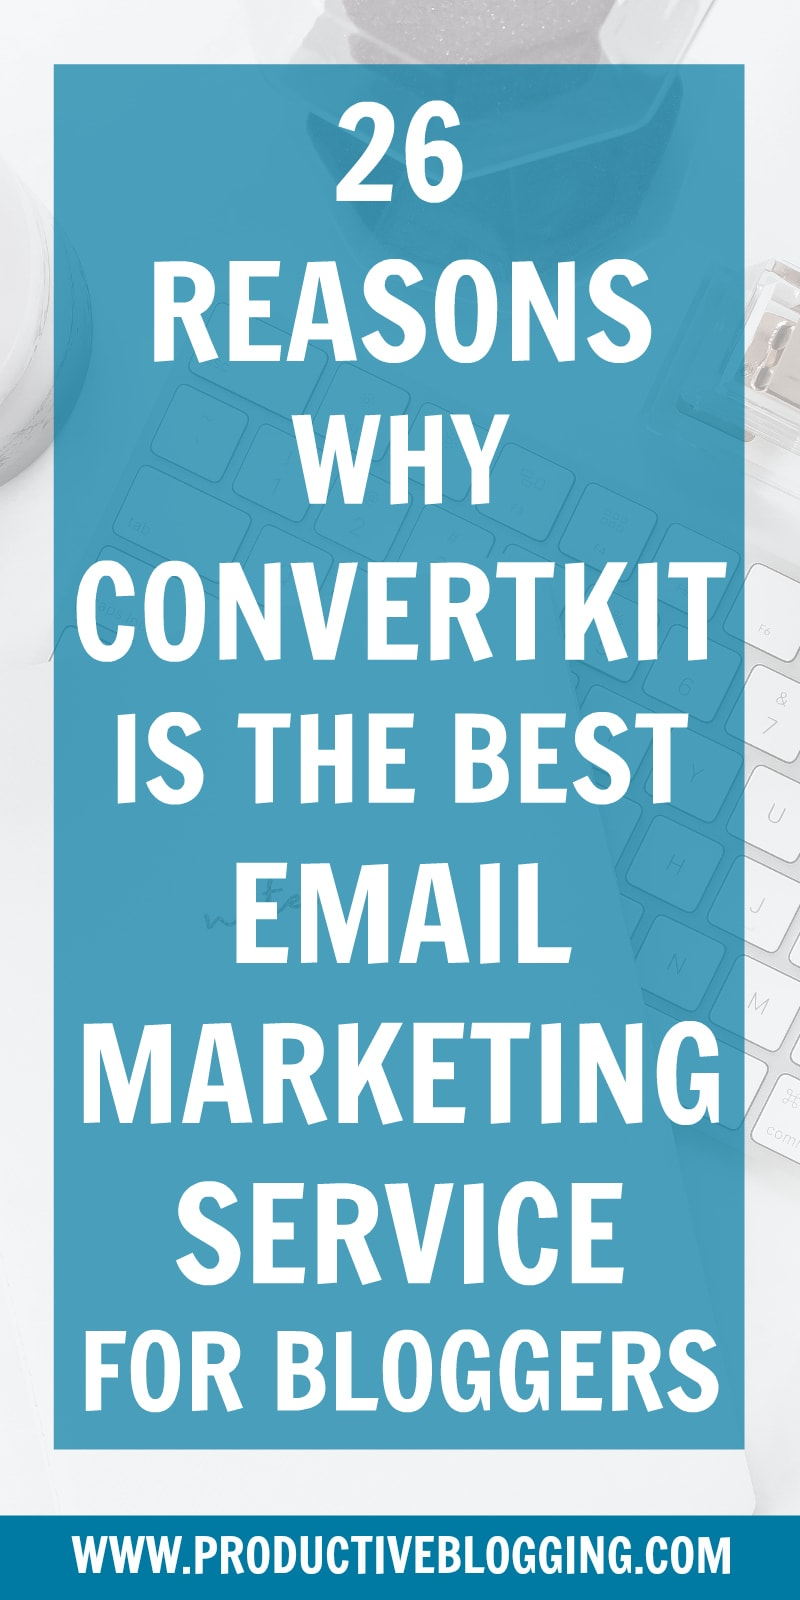 Struggling to decide which email marketing service to choose? Choosing the wrong one can be a HUGE mistake and cost you thousands in lost revenue. Here's 26 reasons why ConvertKit is the best email marketing service for bloggers. #ConvertKit #emailmarketing #emailmarketingforbloggers #emailmarketingtips #email #emaillist #listbuilding #subscribers #convertkit #growyourblog #bloggrowth #bloggrowthhacks #productiveblogging #blogging #bloggers #bloggingtips #blogginghacks #blogsmarternotharder